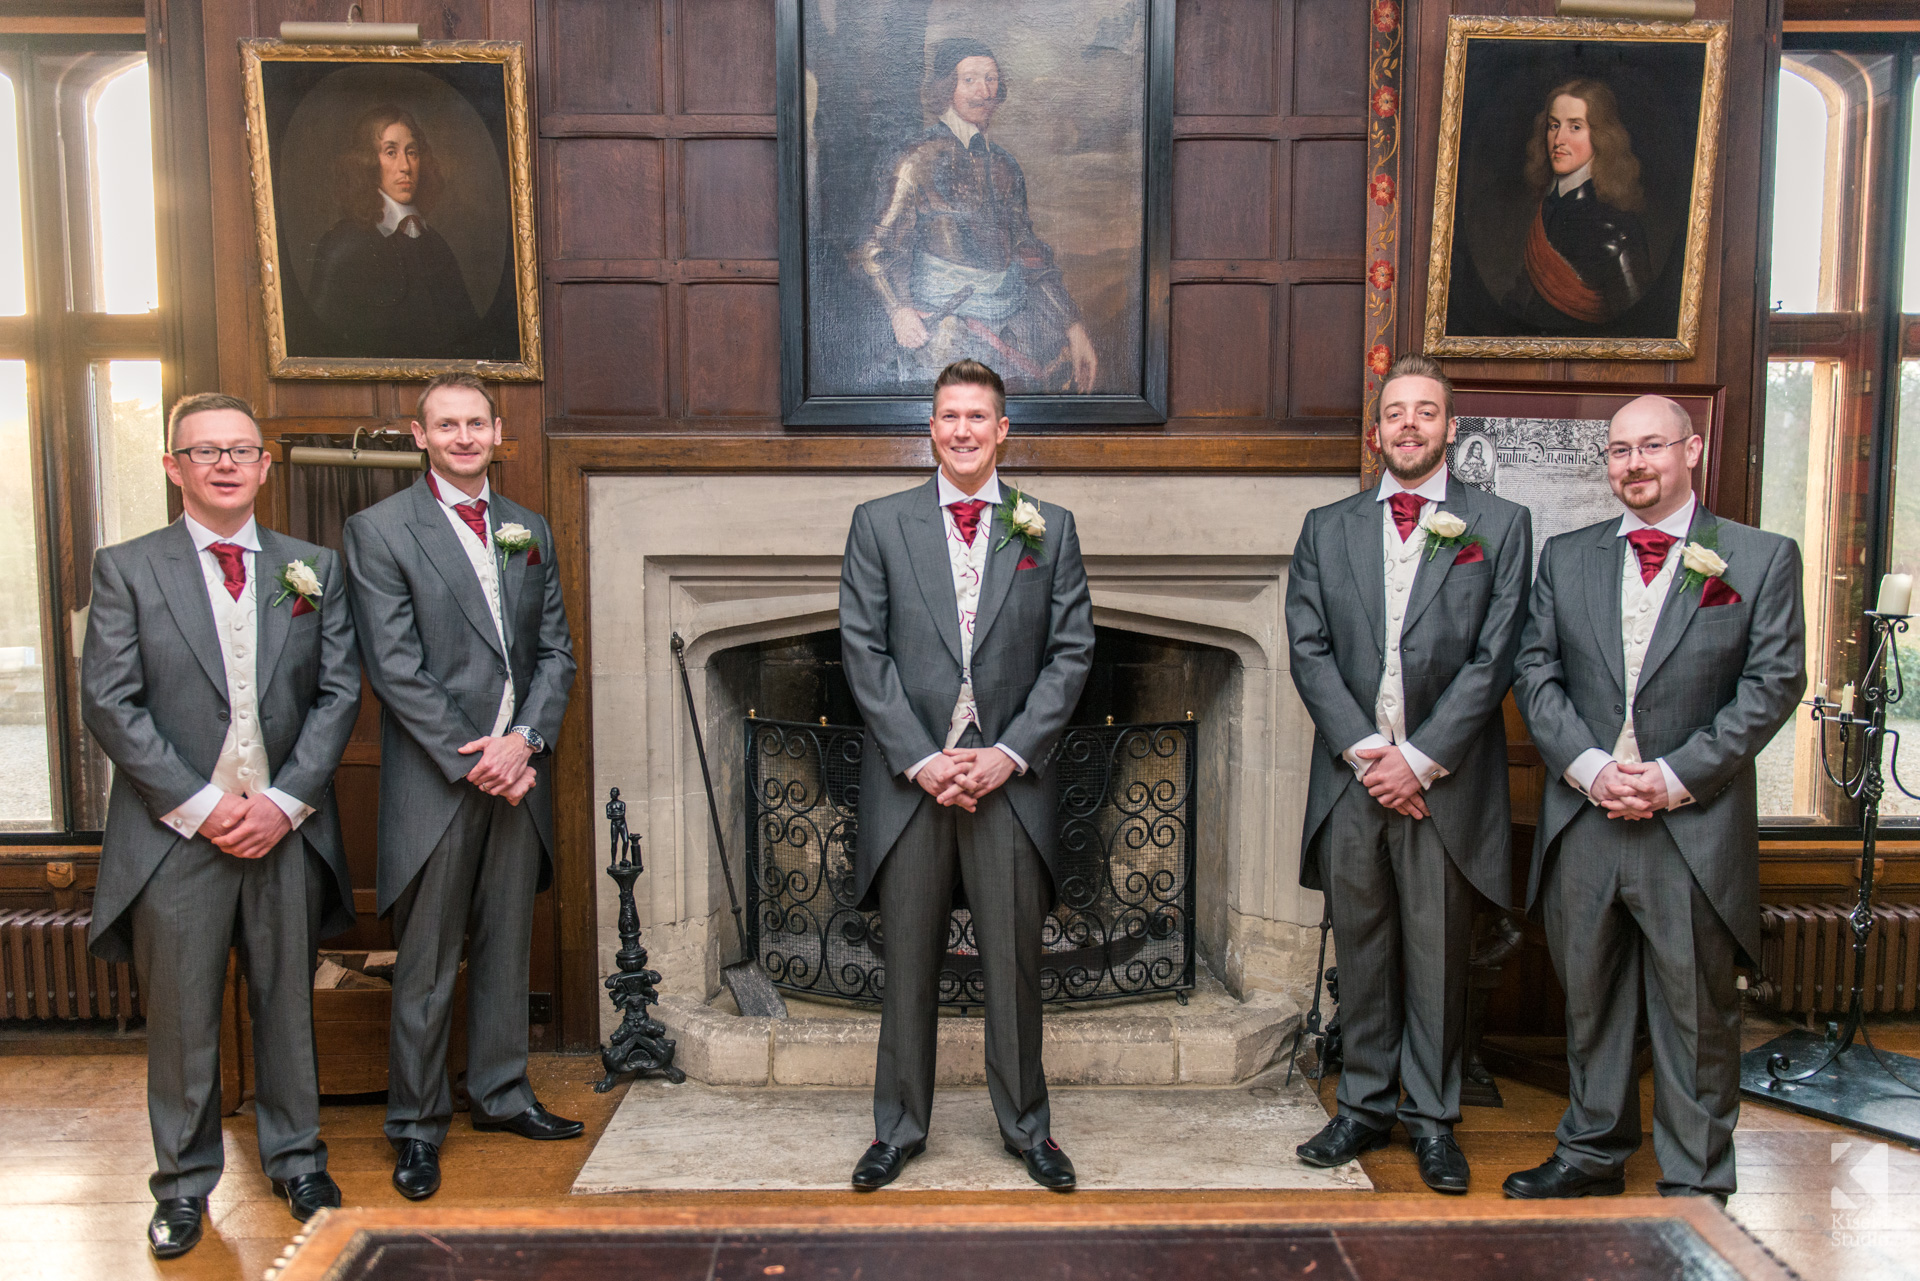 Ripley Castle Wedding - Groomsmen posing in grand room